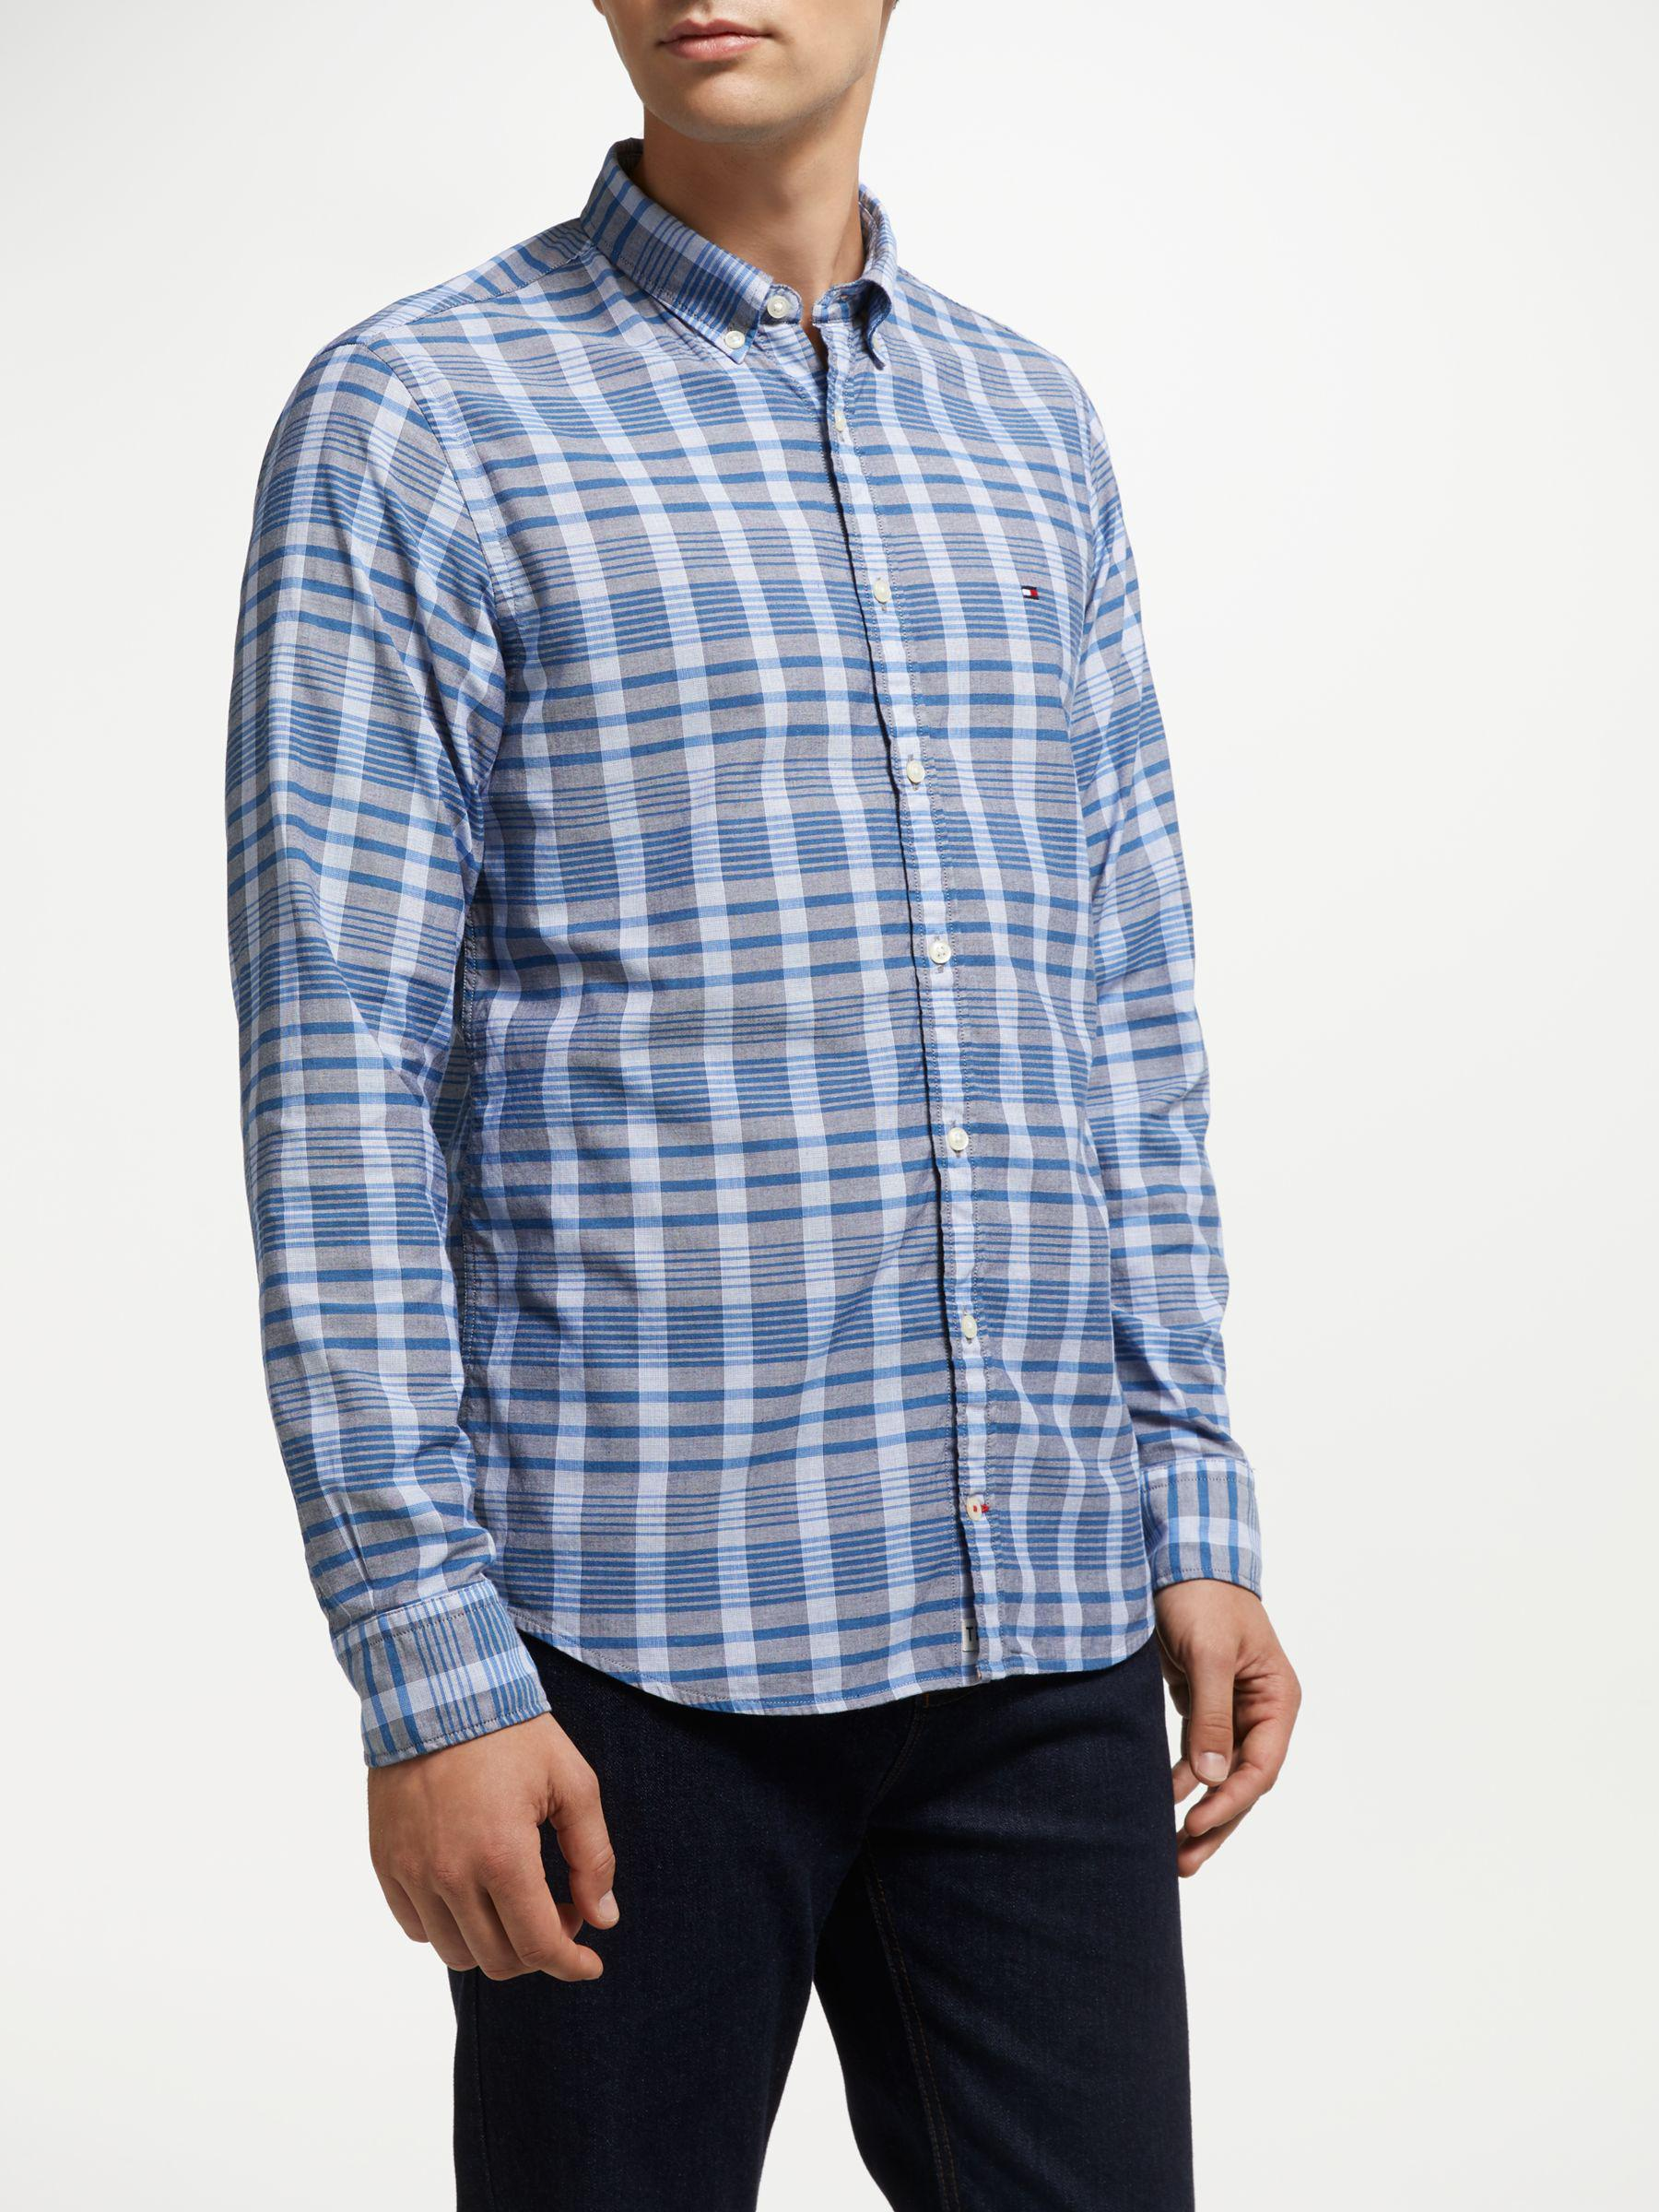 5766b991 Tommy Hilfiger Long Sleeve Check Shirt in Blue for Men - Lyst